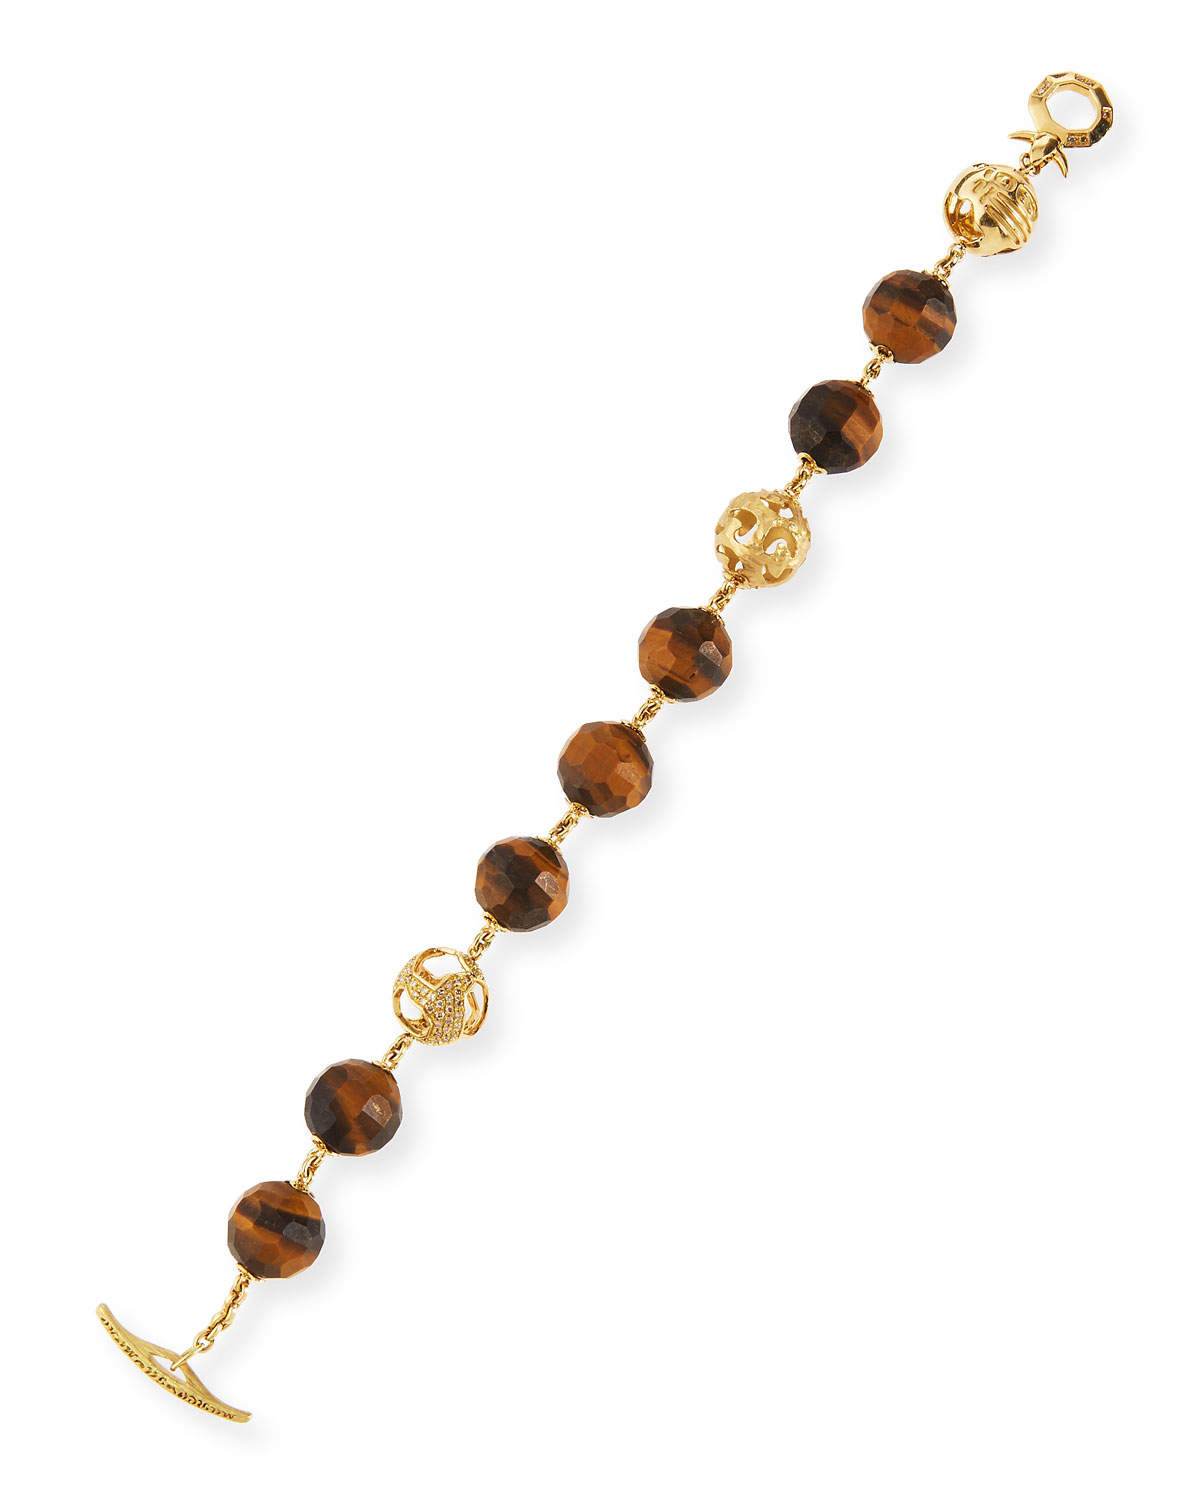 Marco Dal Maso Faceted Tigers Eye Toggle Bracelet gTO8Wz